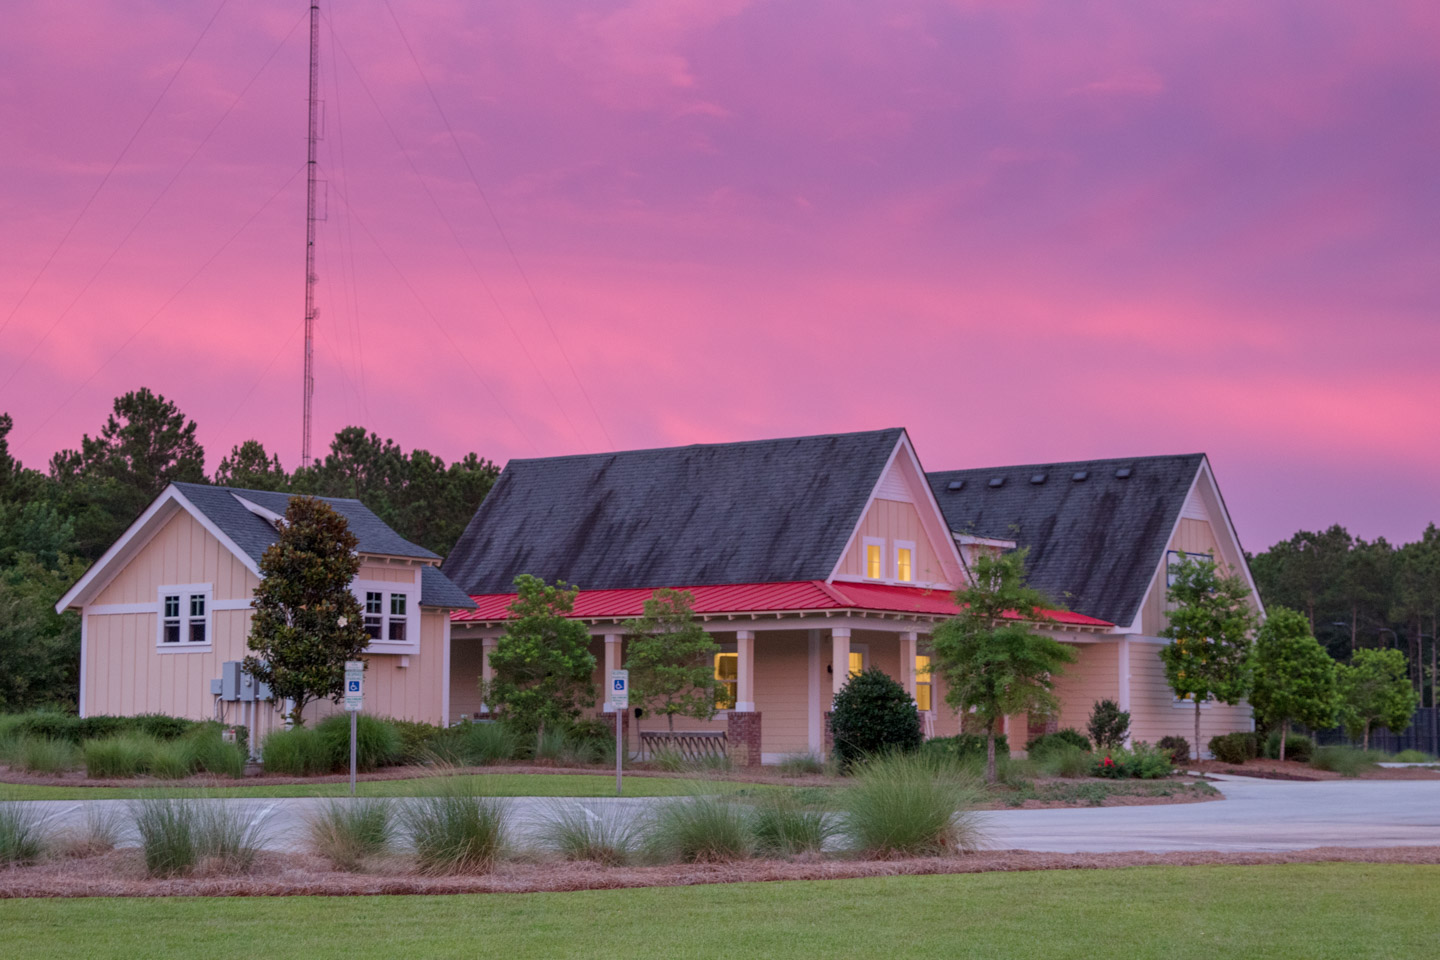 The Arlington Place Clubhouse at sunset.